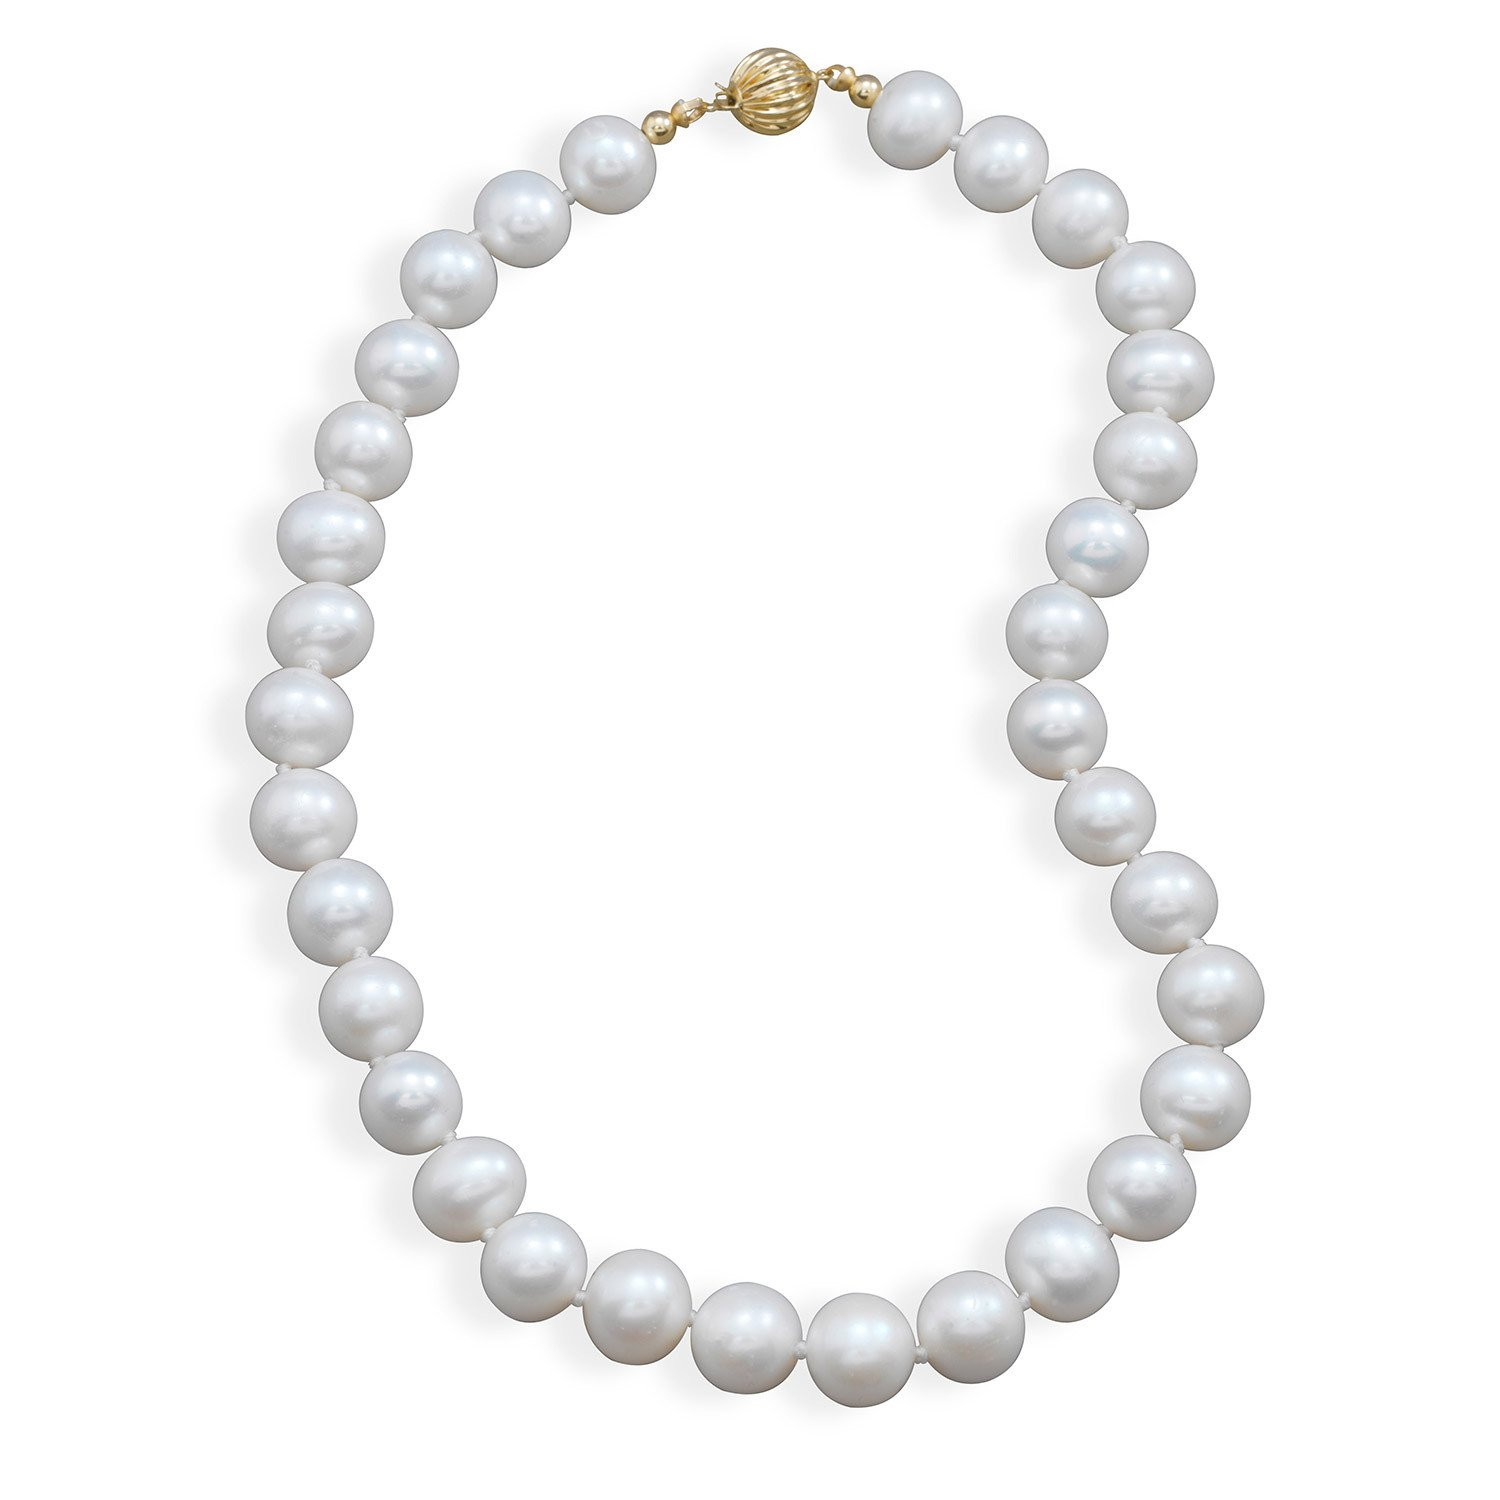 16.5″ 10.5-11.5mm Cultured Freshwater Pearl Necklace with a Yellow Gold Clasp